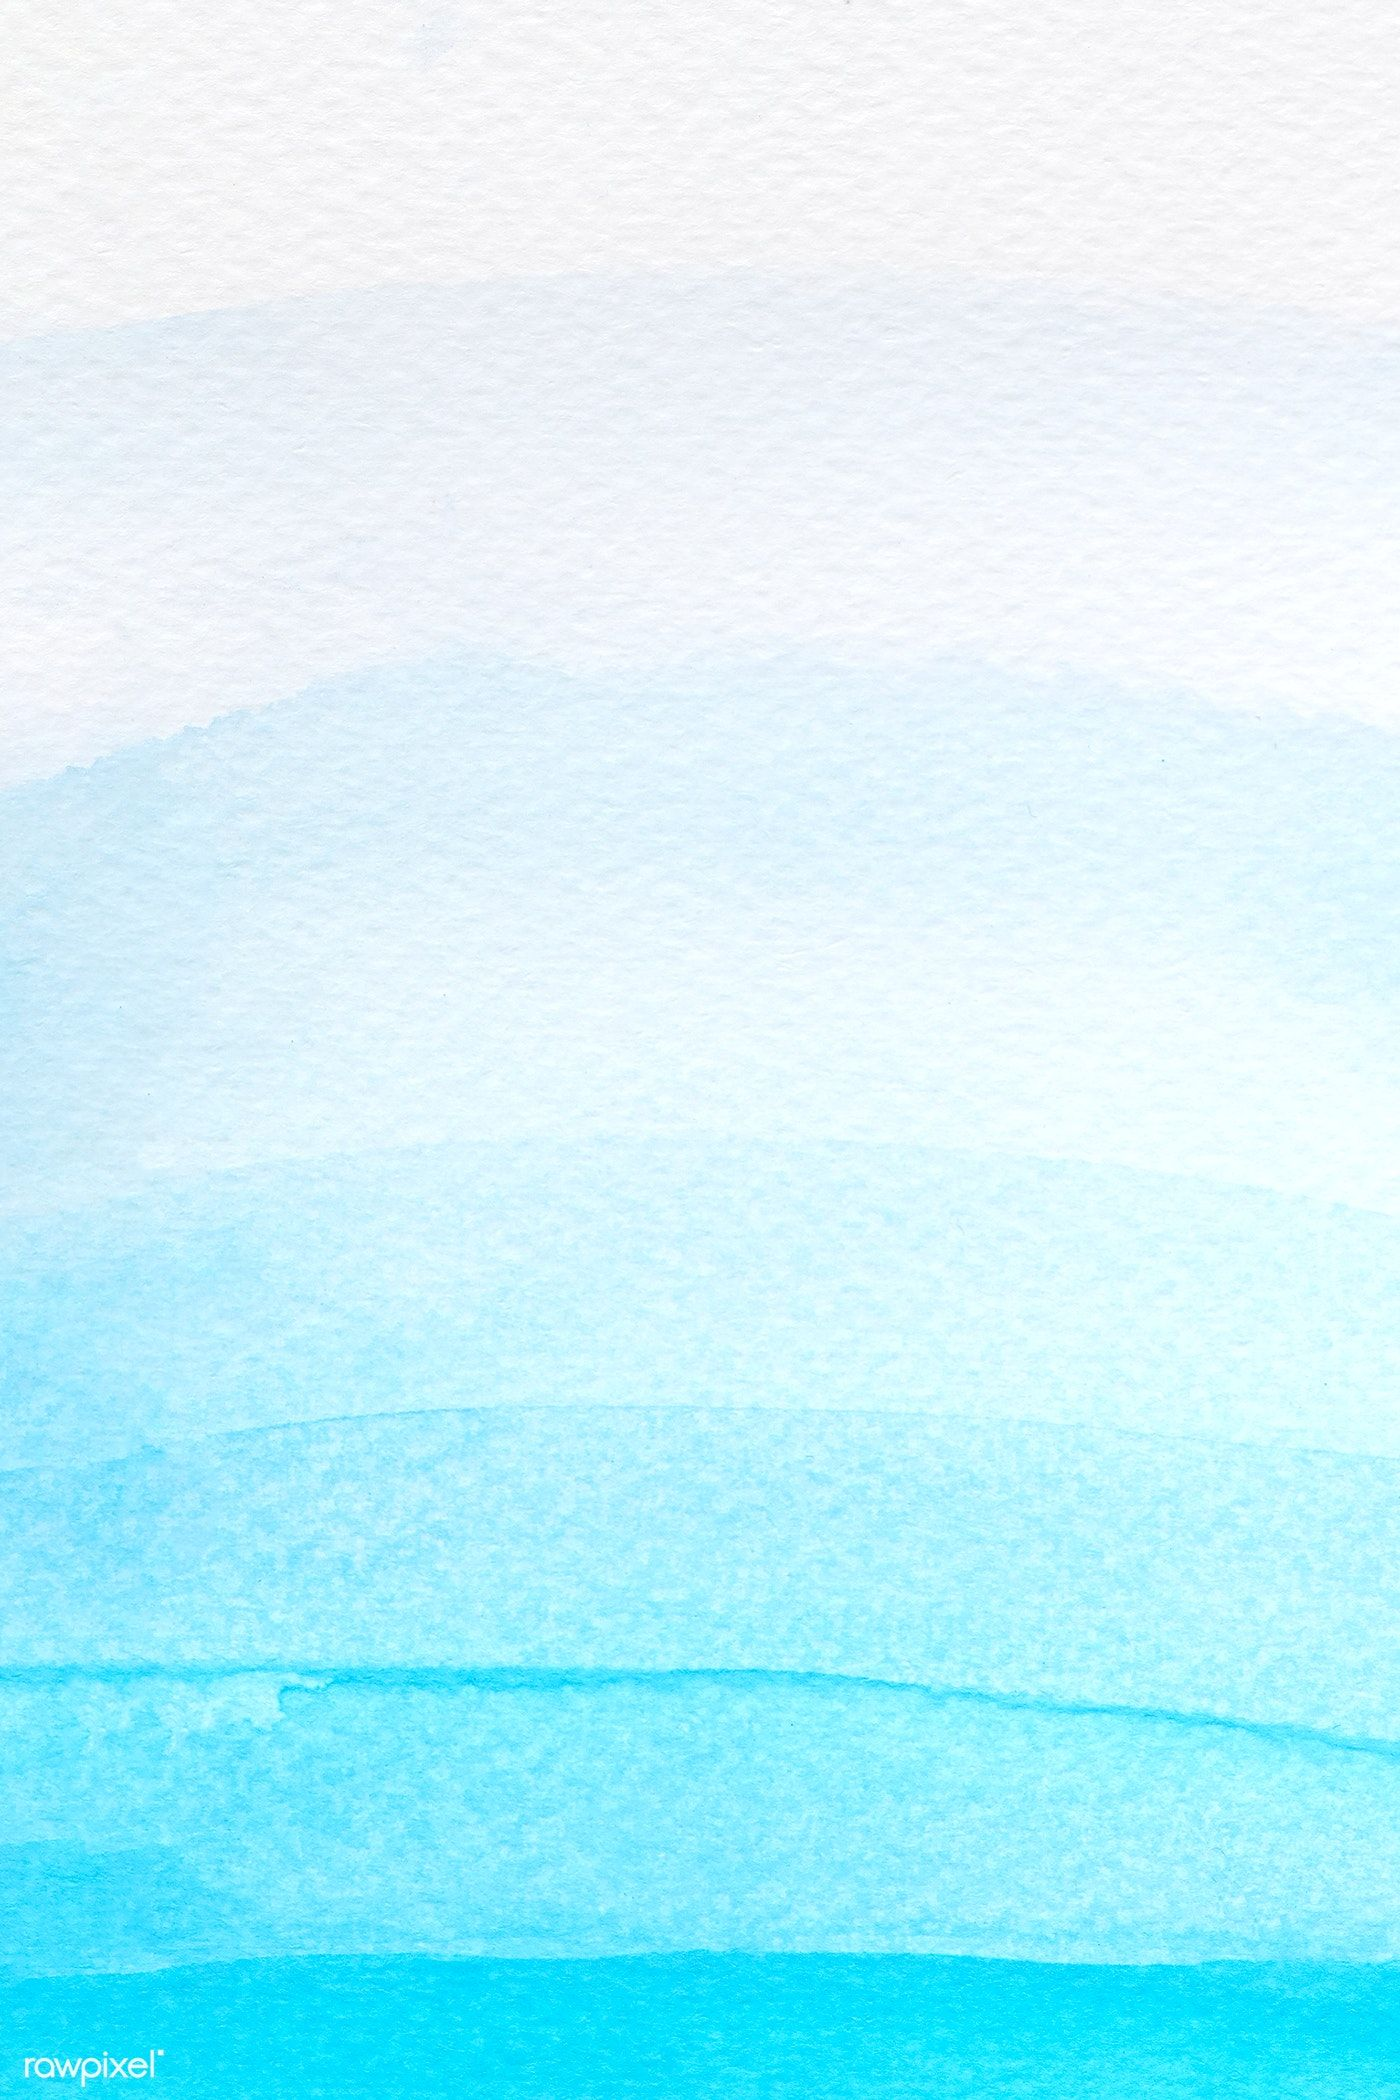 Download Premium Illustration Of Light Blue Watercolor Textured